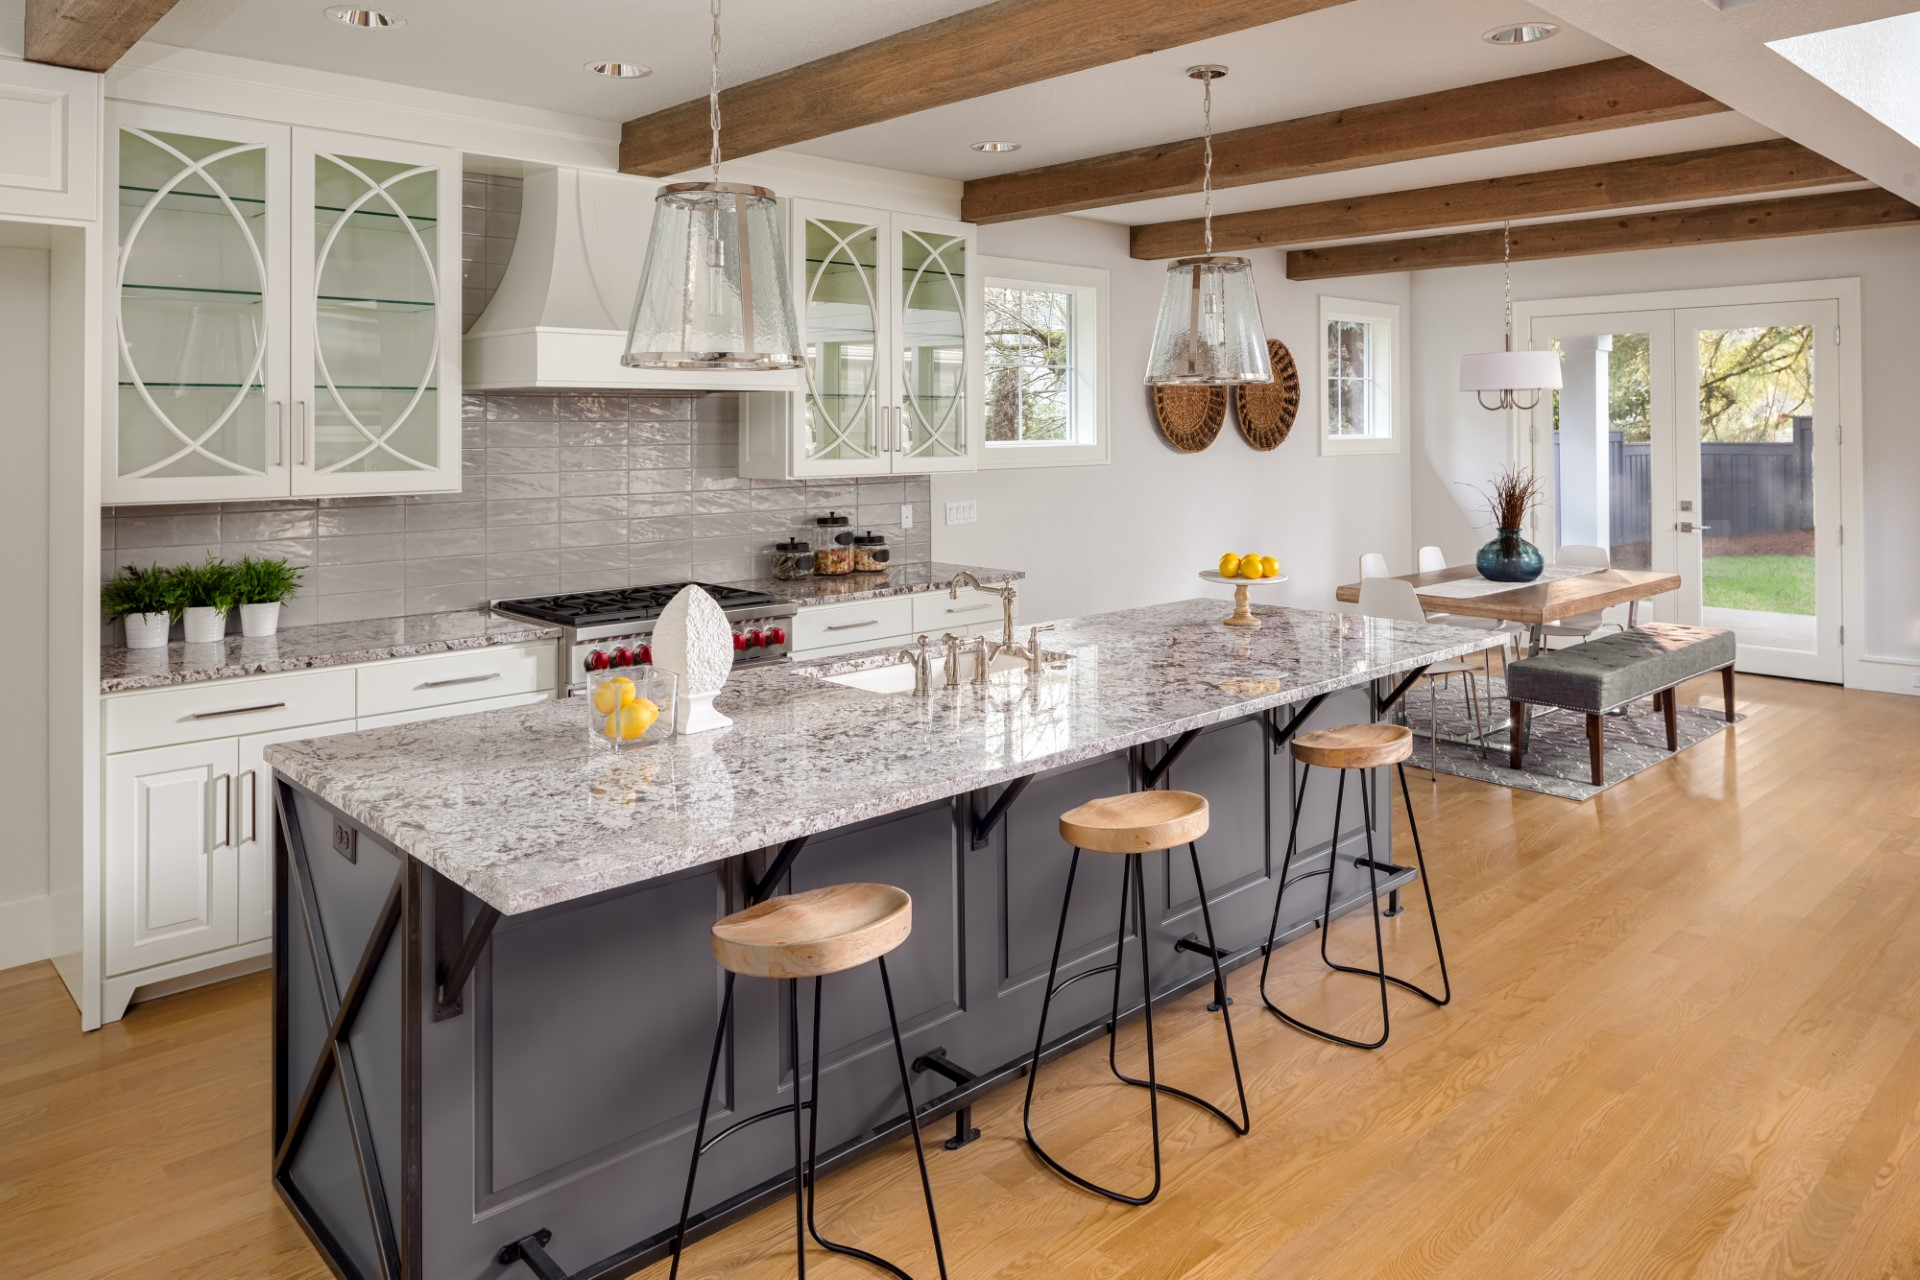 What a beautiful Cape Cod style old world kitchen. It's not every day you run into stained wood beams on the ceiling. Couple that with monotone wood flooring to emphasize the wooden beams, and you have a kitchen that lights up the room.